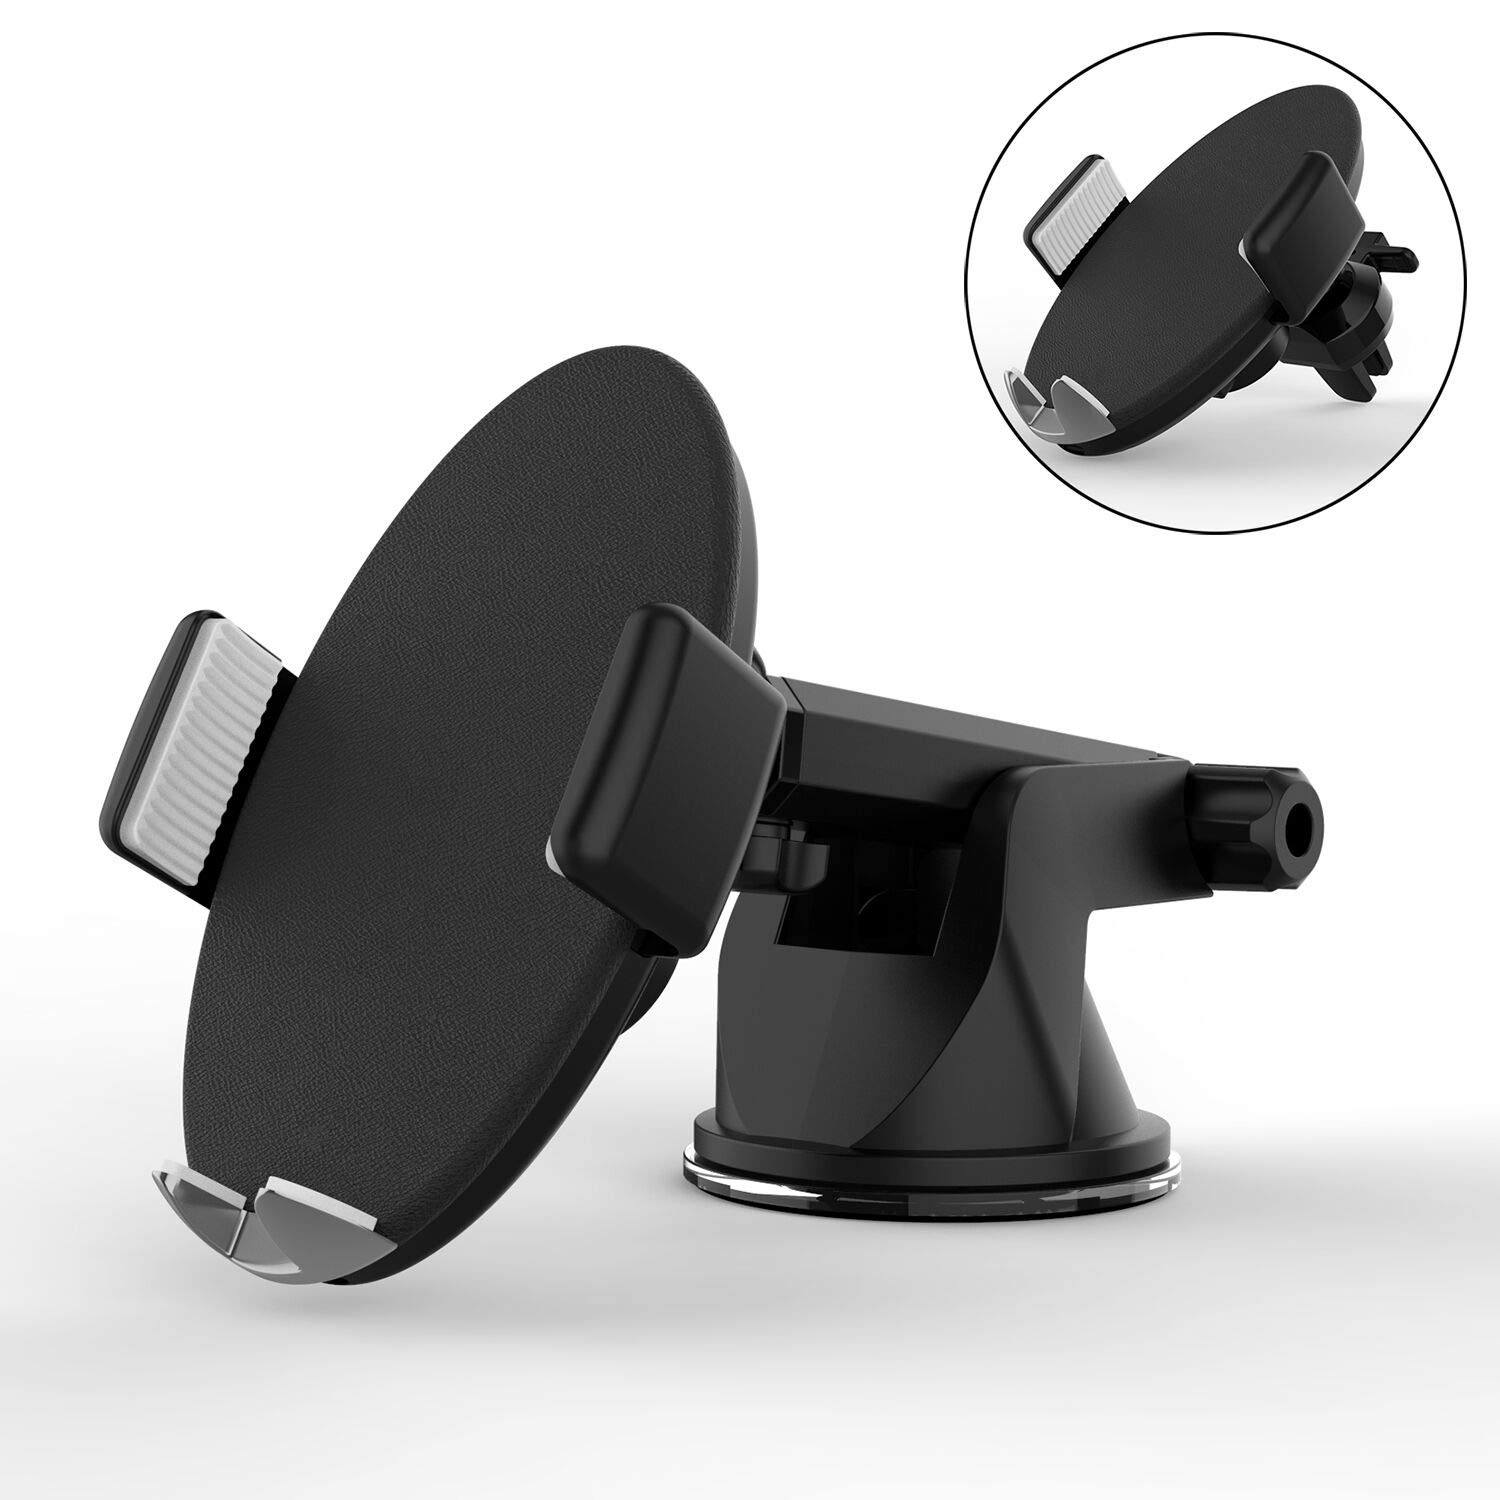 Wireless Car Charger,Touch Sensitive Automatic Qi Wireless Charger Car Mount with 360° Air Vent Leather Pad 10W Fast Charging Holder Compatible with iPhone X XR 8,Samsung Galaxy S9 S8 Note 8 and More